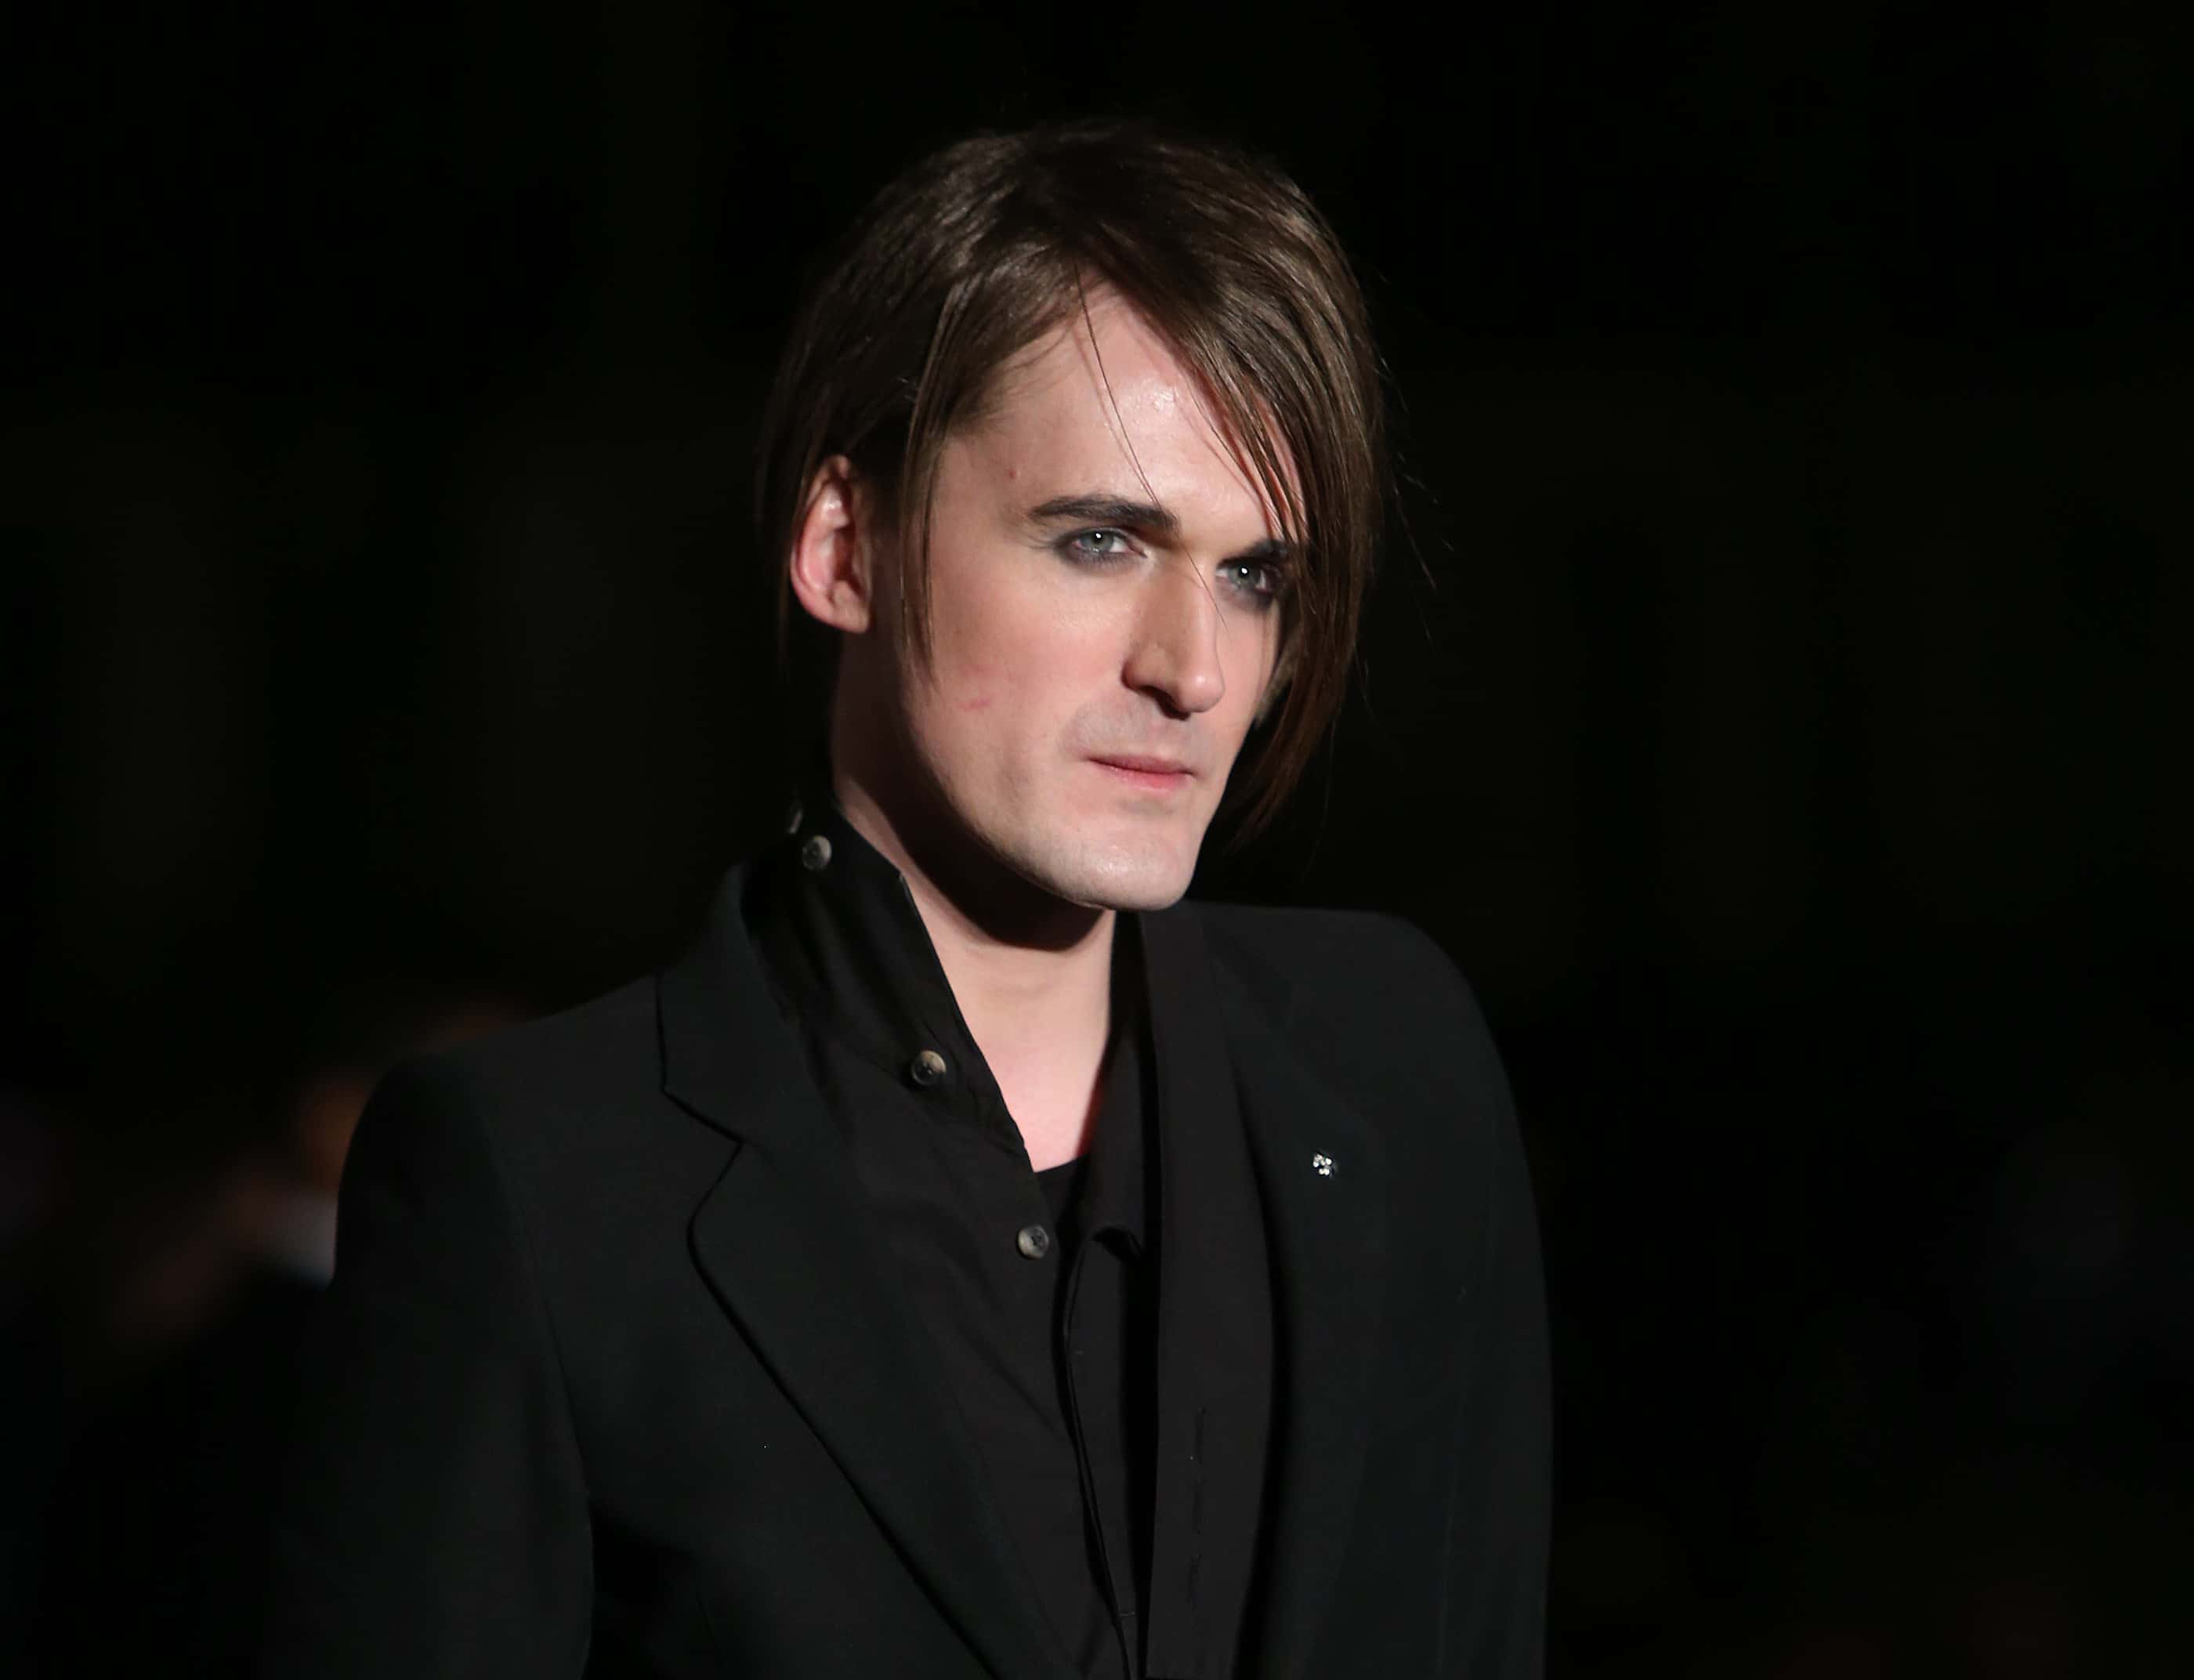 Gareth Pugh poses for photographers upon arrival at the Alexander McQueen Savage Beauty Gala exhibition in London, Thursday, March 12, 2015. (Photo by Joel Ryan/Invision/AP)